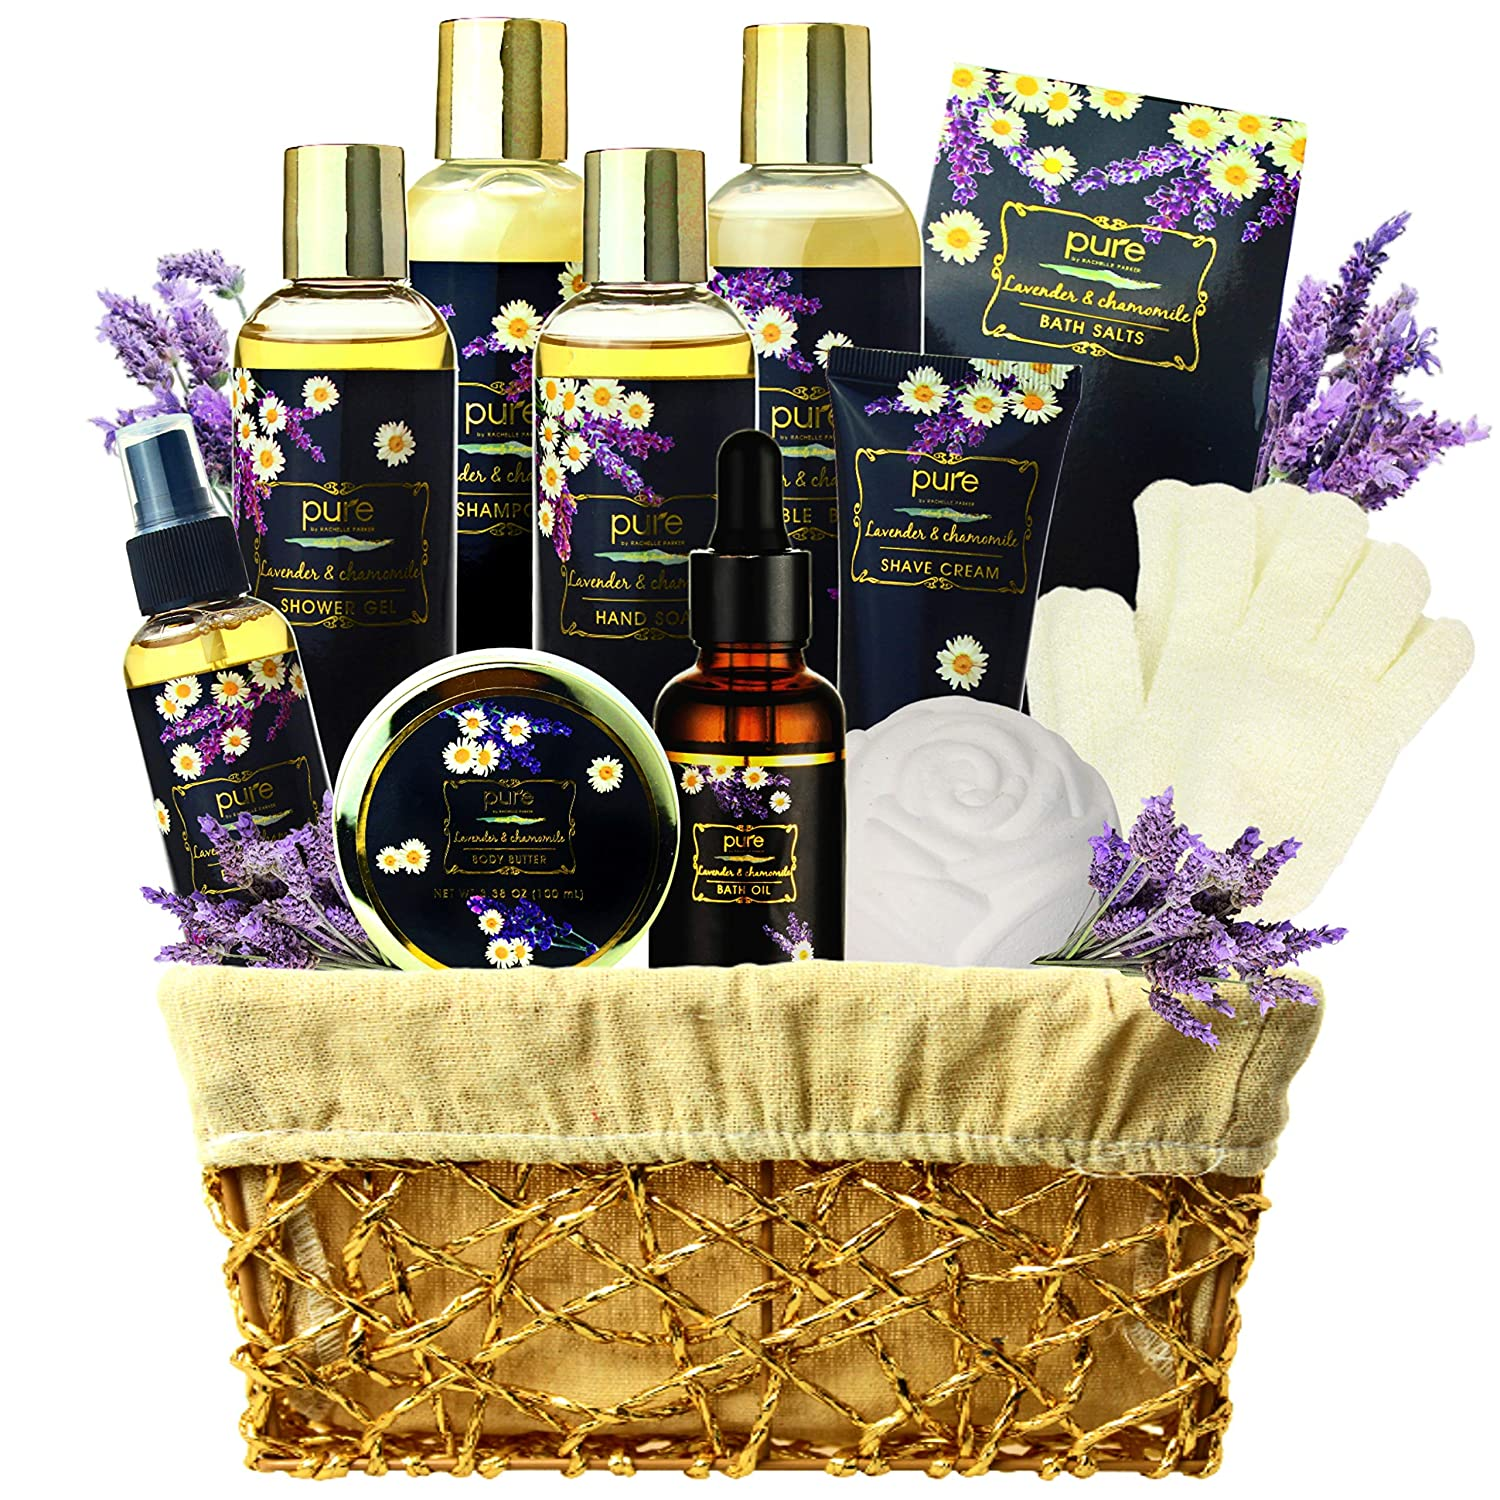 Lavender Chamomile Natural Spa Gift Basket, Lavender Aromatherapy Luxurious Bath and Body Gift Set 8 Piece Home Spa Kit. Best Relaxing Gift Basket for Mom as Mothers Day Gift Set! : Beauty